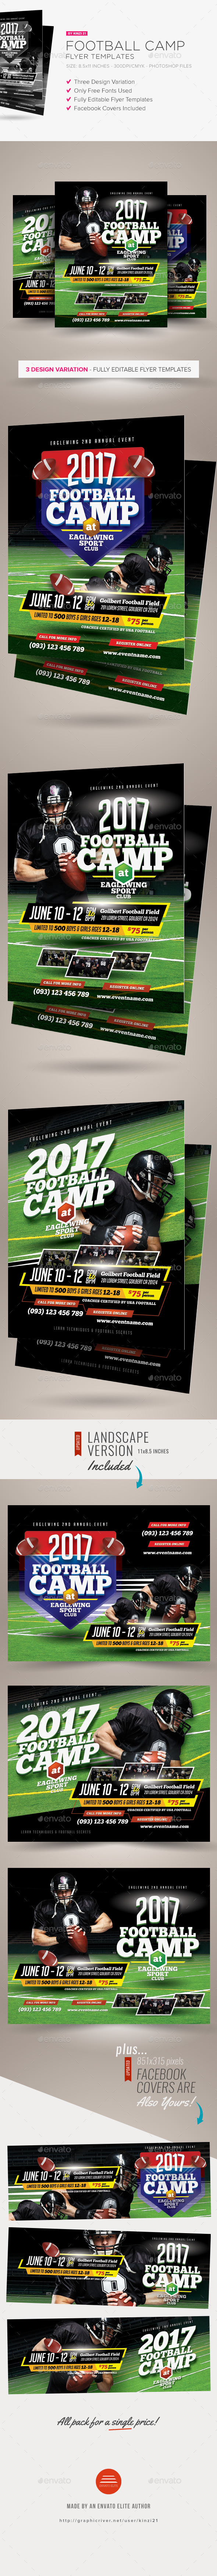 Football Camp Flyer Templates - Sports Events